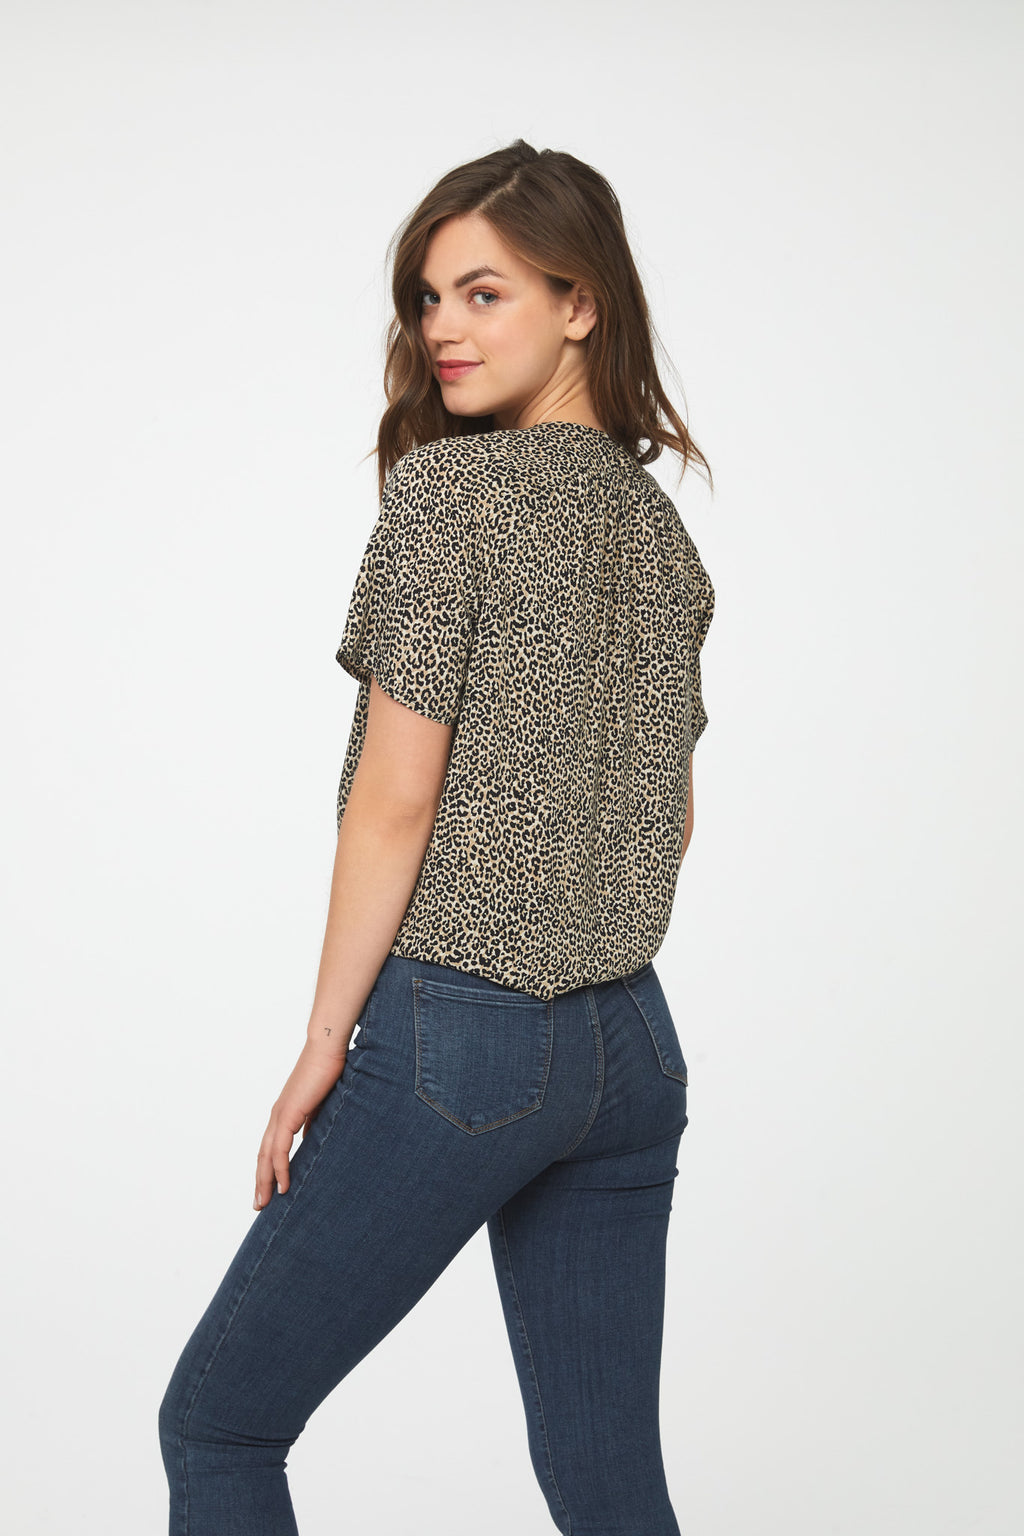 back of woman wearing a silky, short sleeve, button front v-neck blouse in leopard print with self tie front and drop shoulder